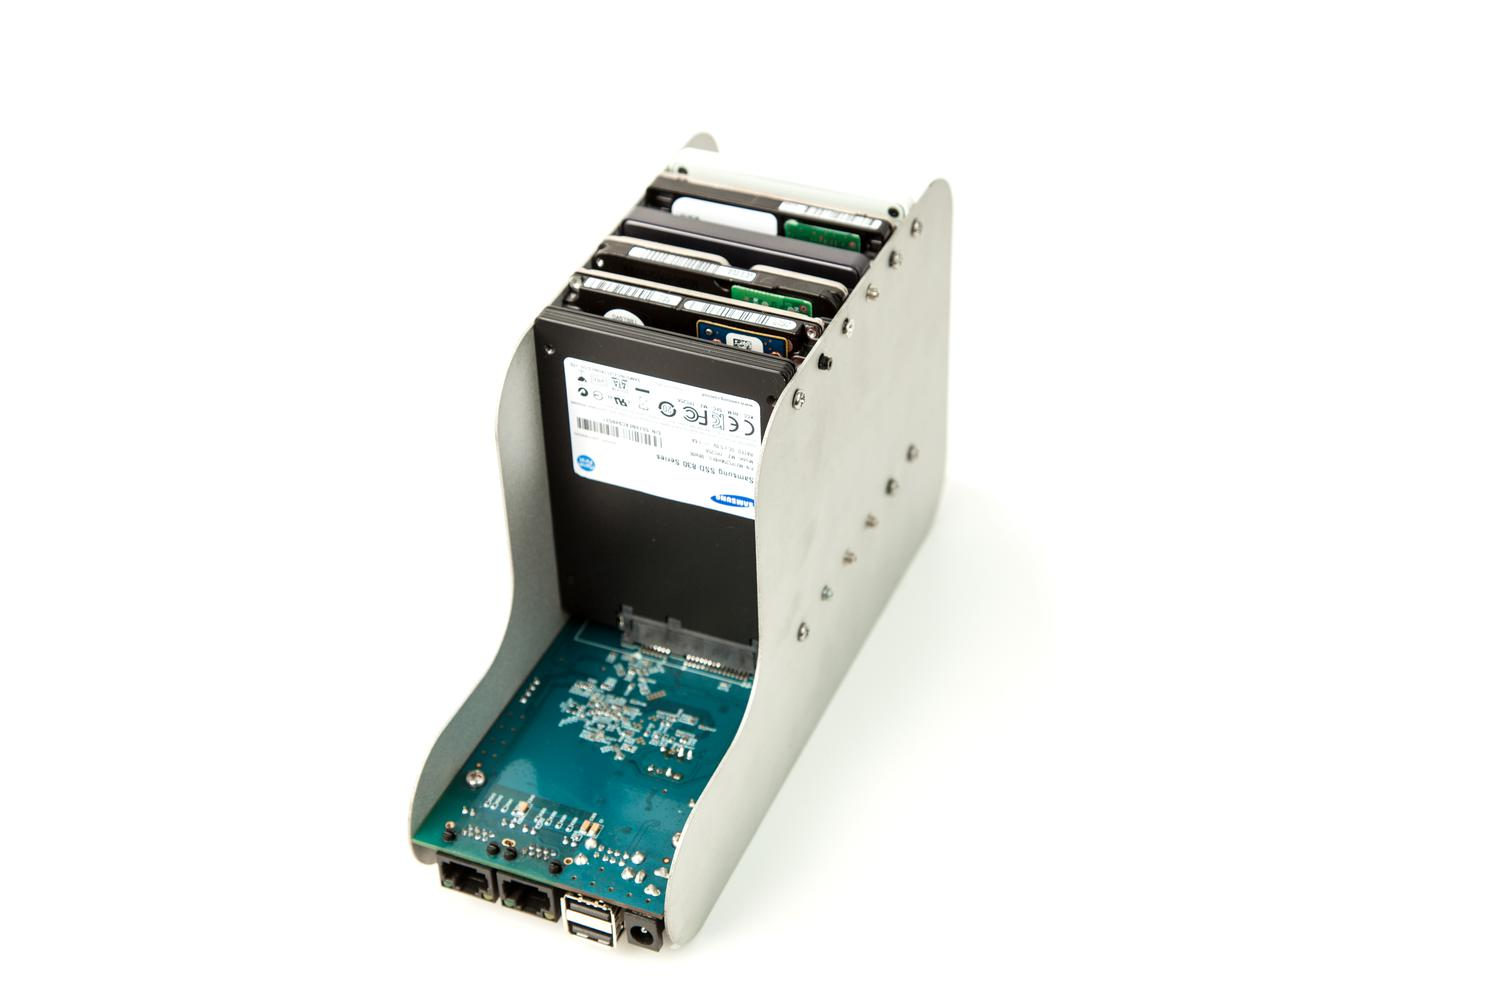 EOMA68 Computing Devices   Crowd Supply